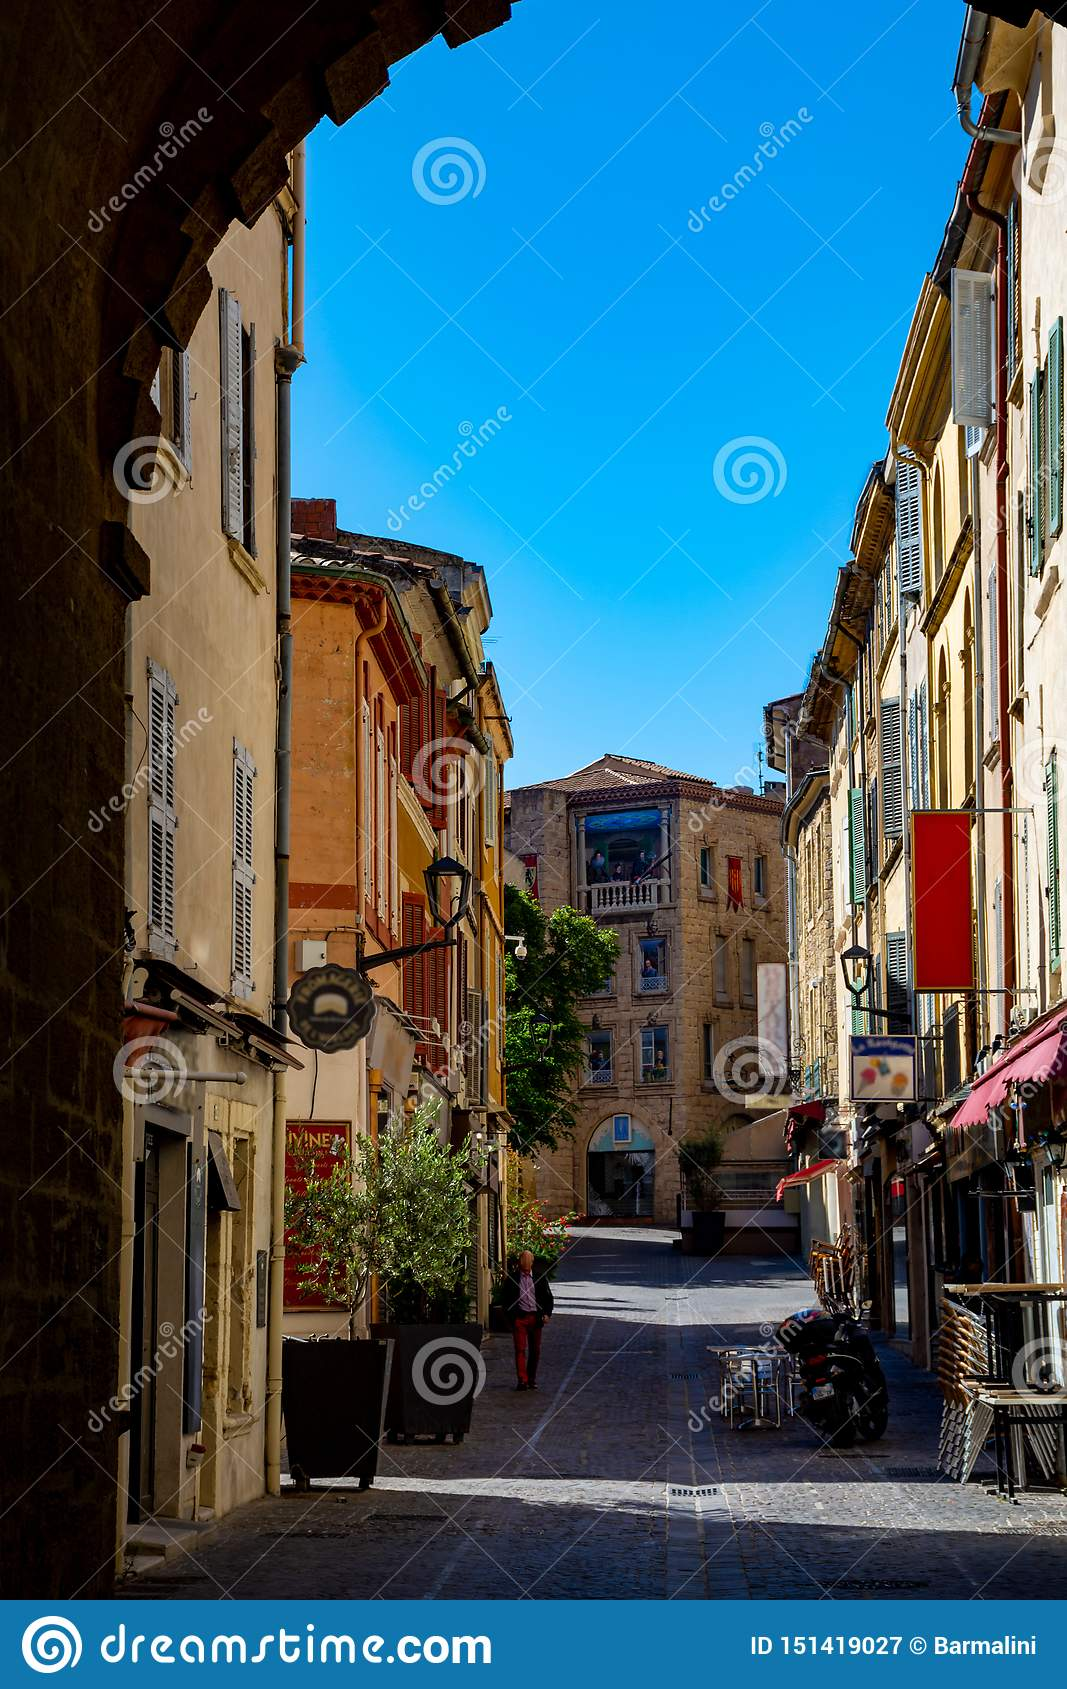 Medieval Provencal Town Salon En Provence South Of France Stock Image Image Of Europe Sunny 151419027